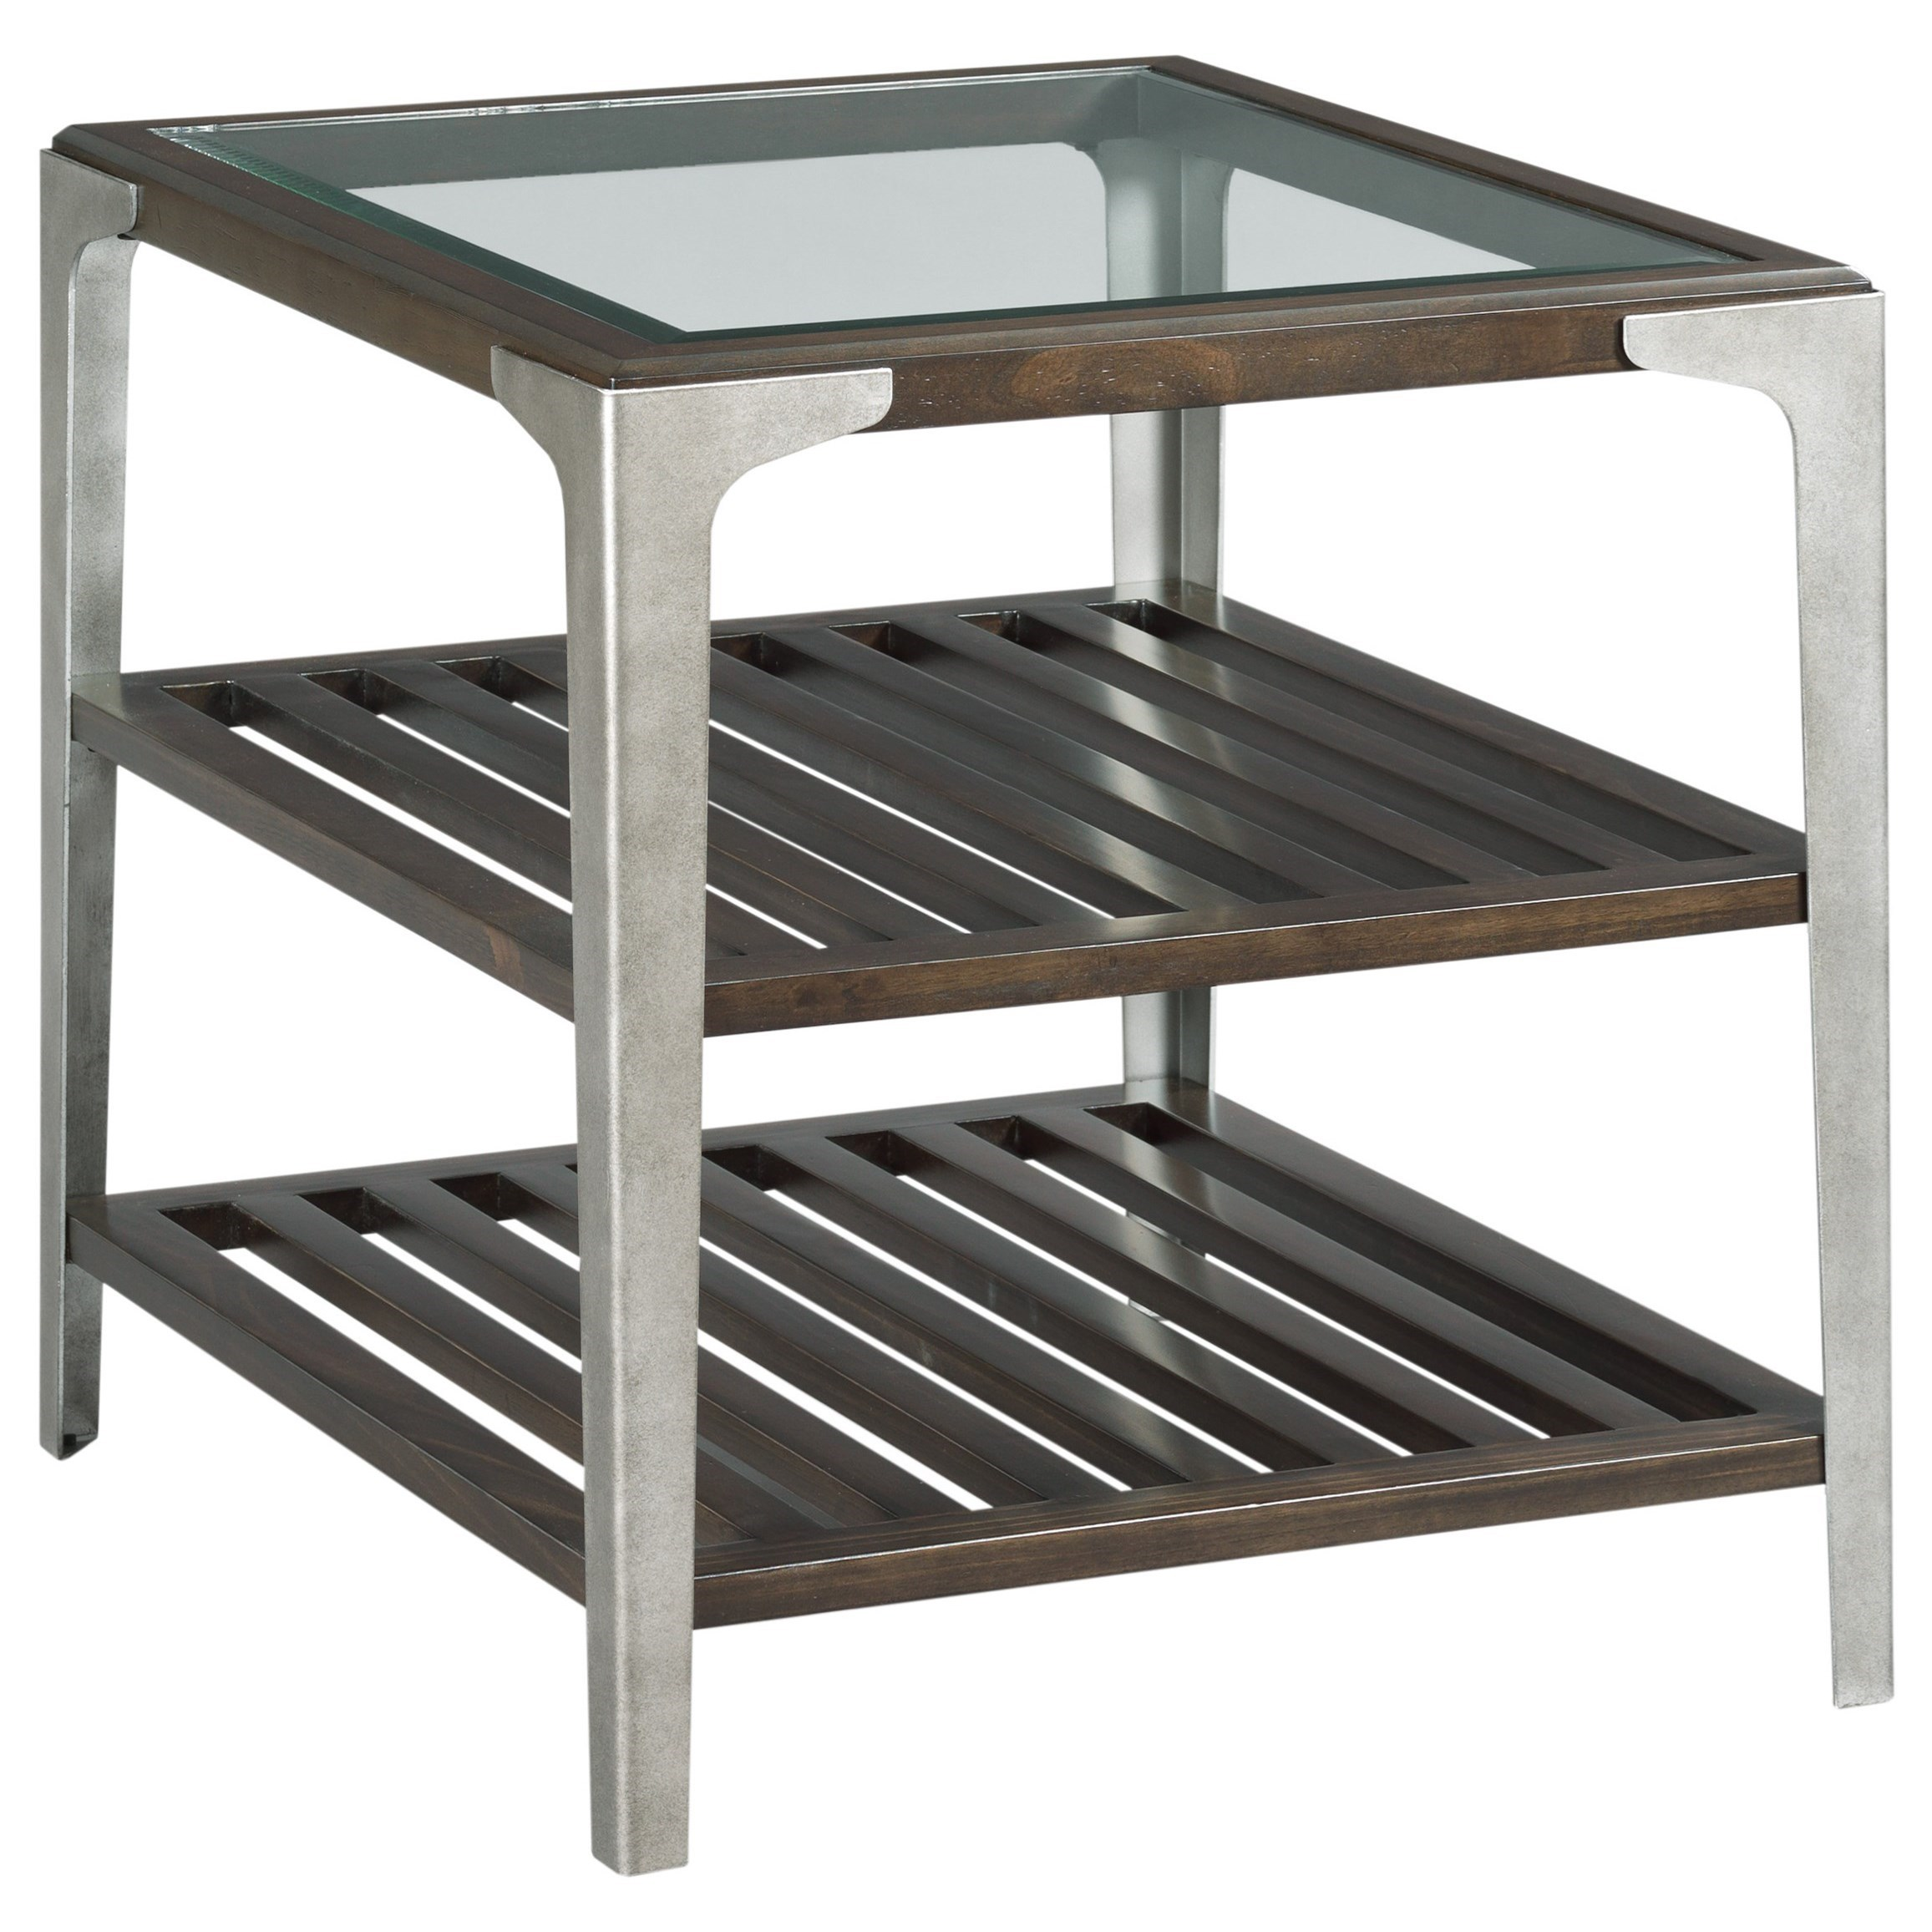 Tranquil Rectangular End Table by Alexvale at Northeast Factory Direct